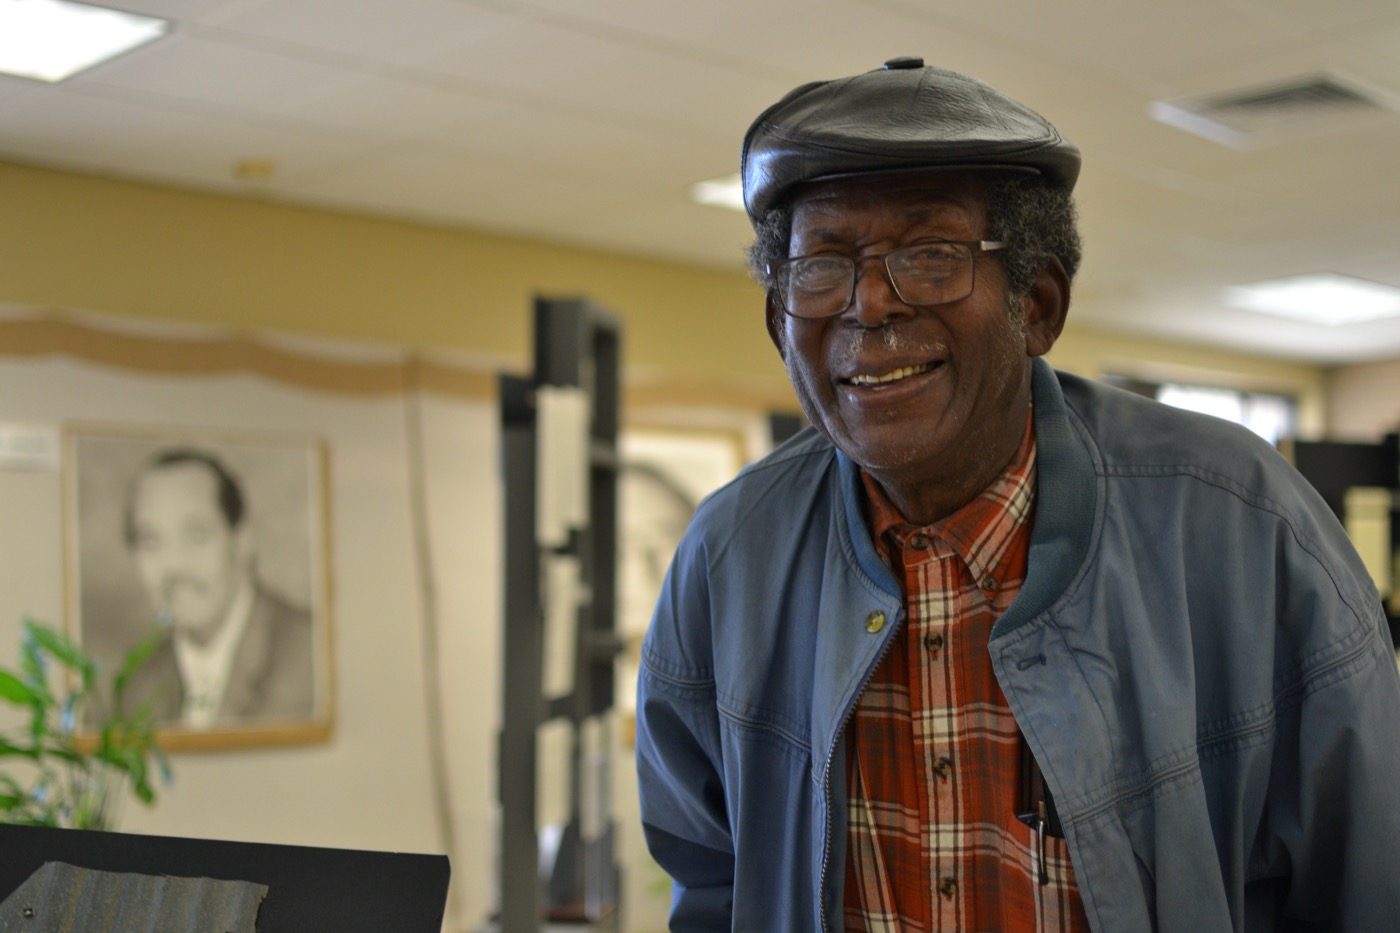 an older black man wearing a jacket and cap smiles at the camera